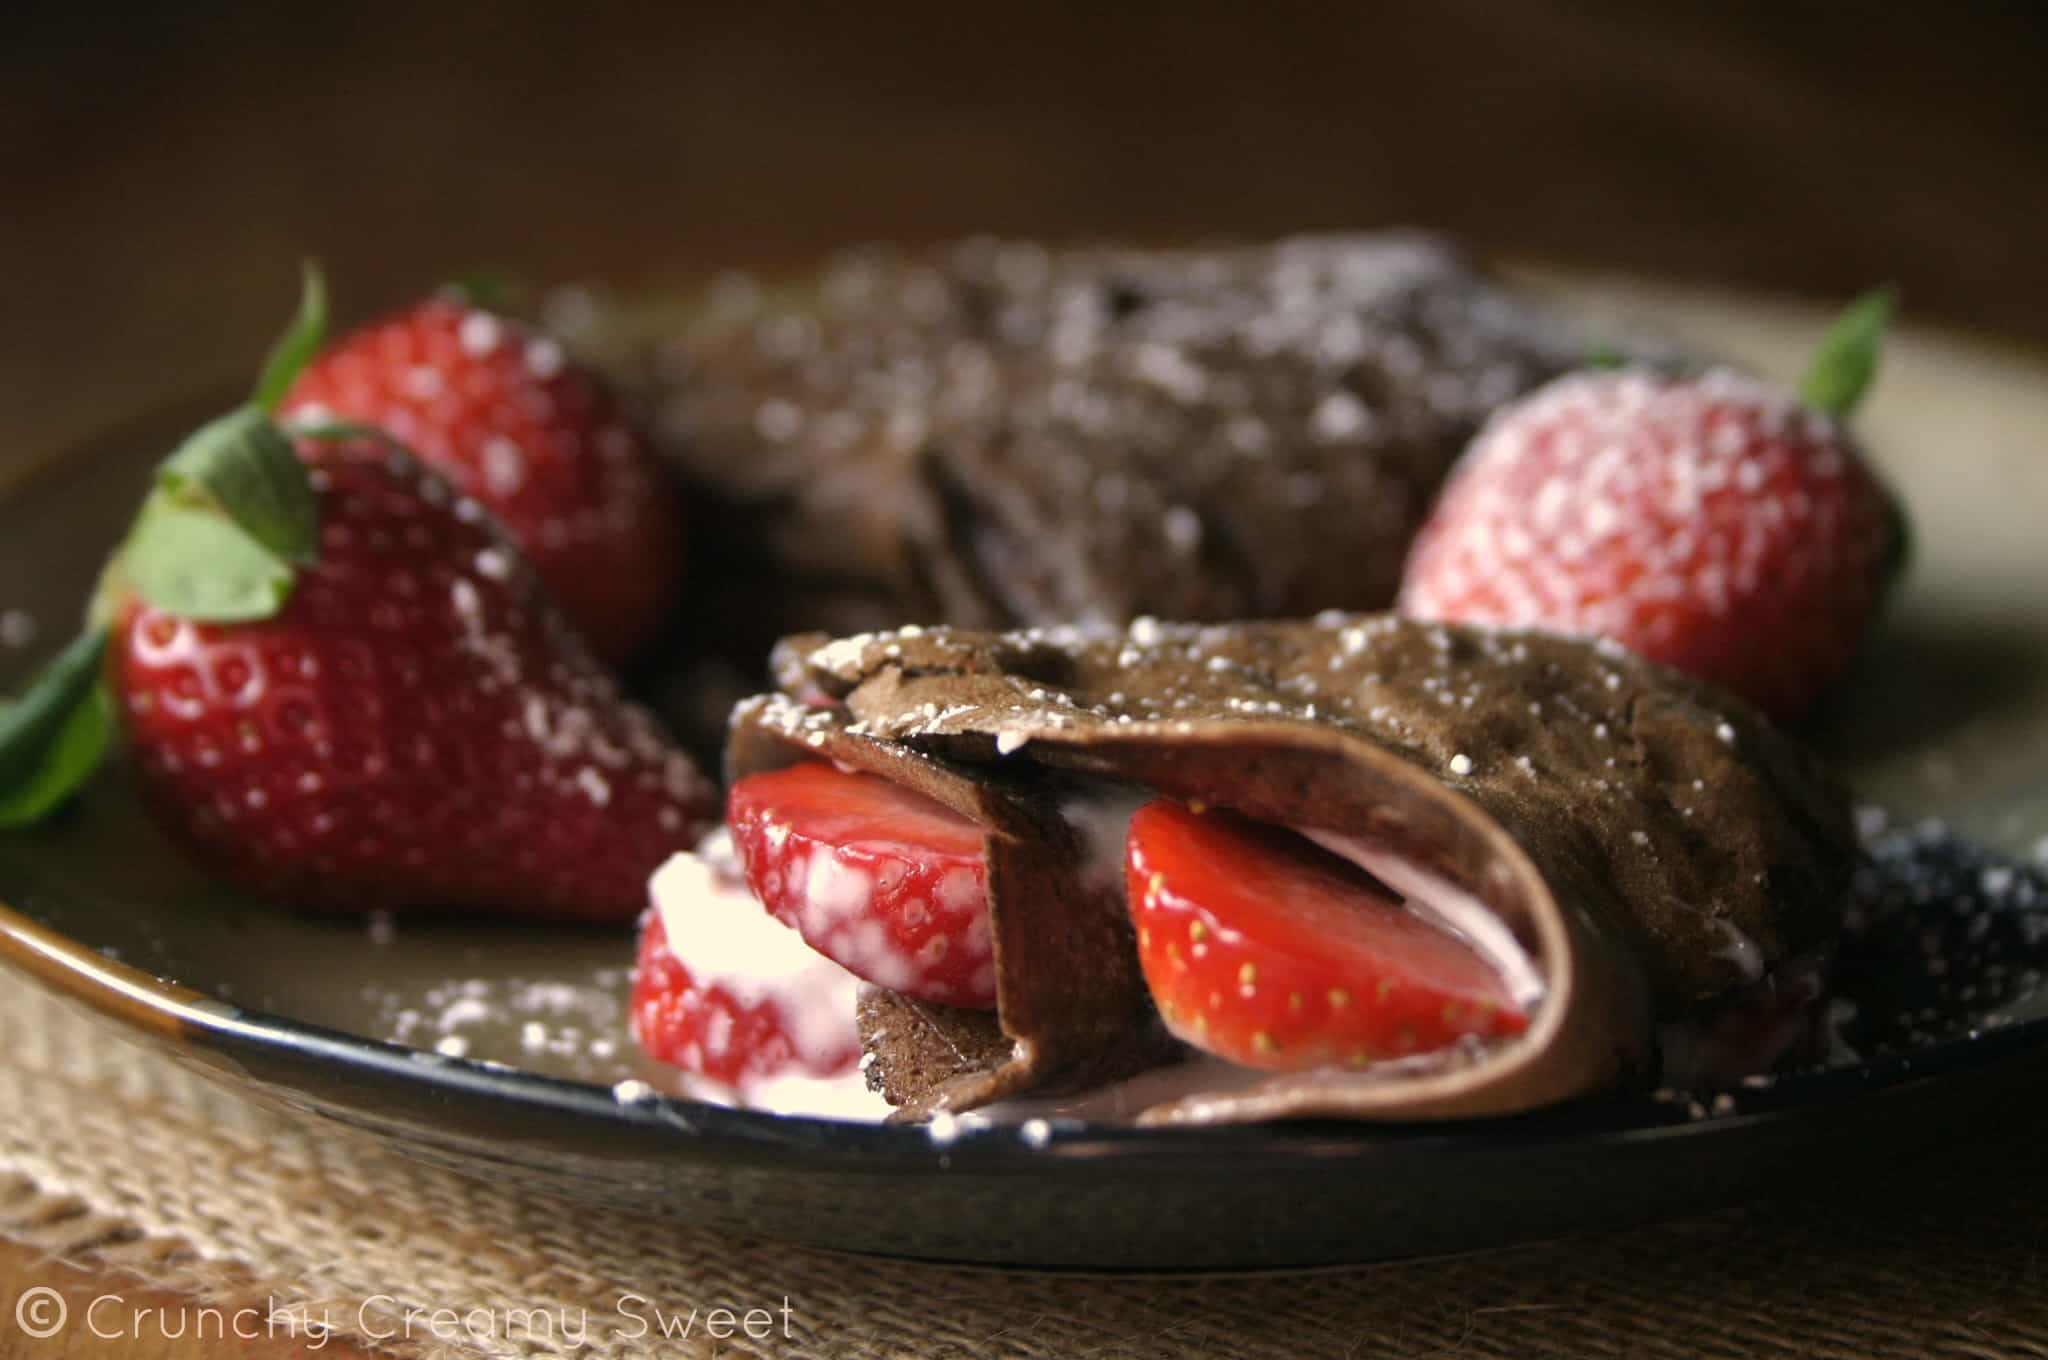 chocolate crepes 4 Chocolate Crepes with Strawberries and Cream Cheese